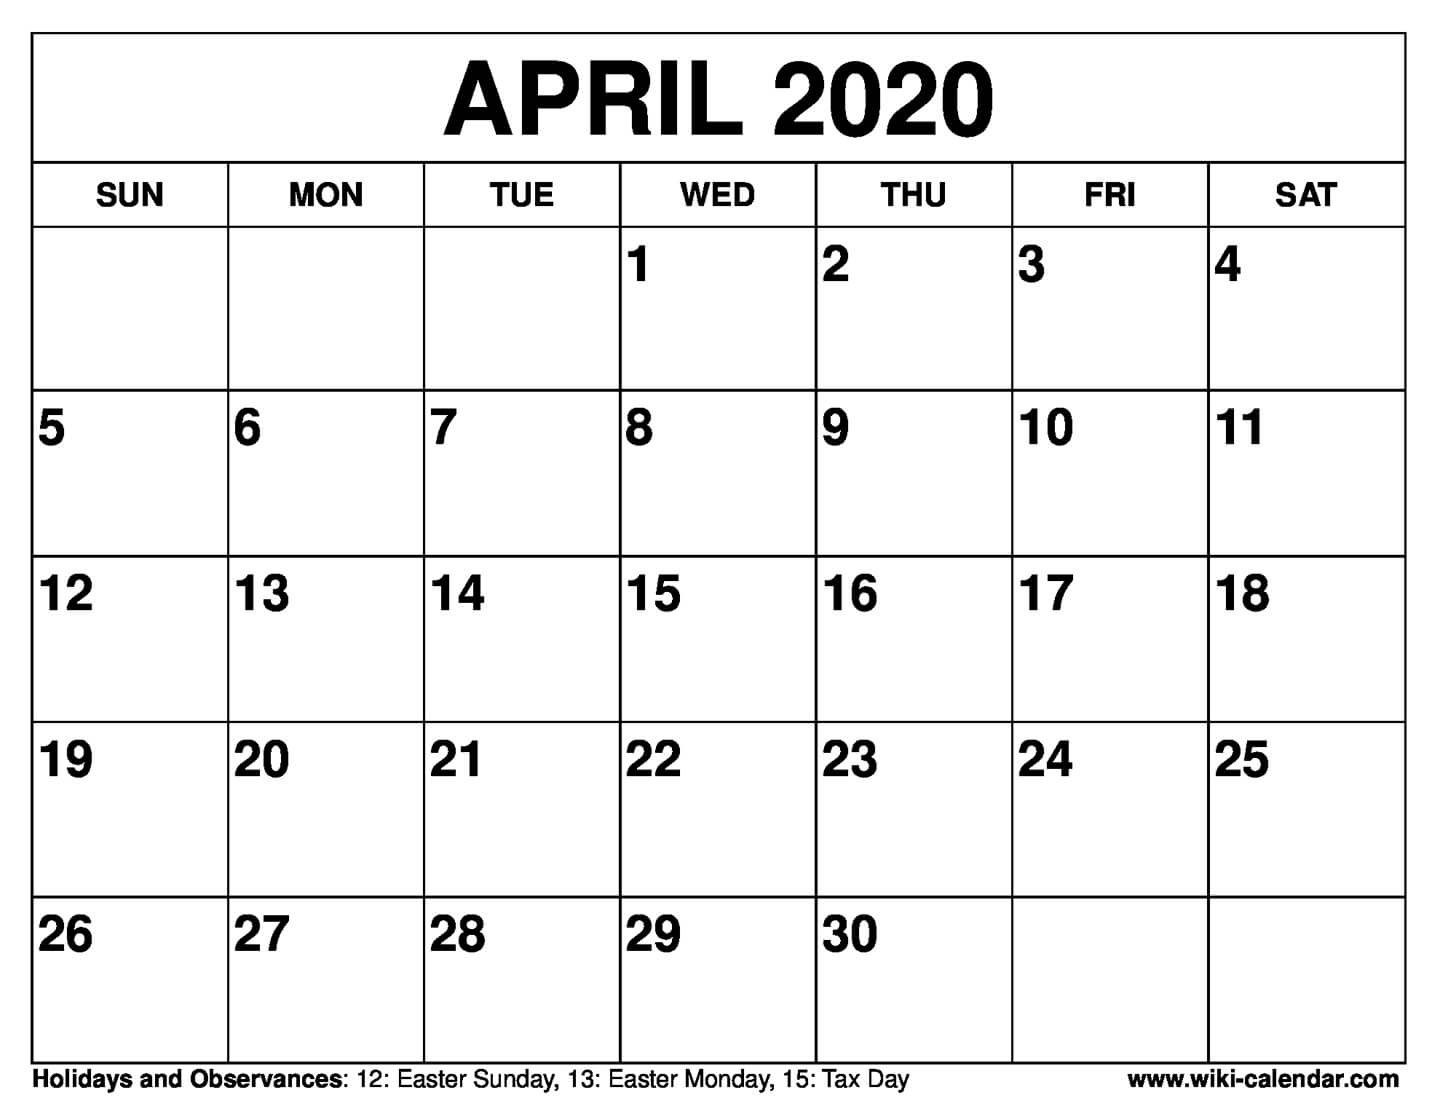 Free Printable April 2020 Calendars Printable Calenders With Date And Time On 8 1/2 X 11 Paper